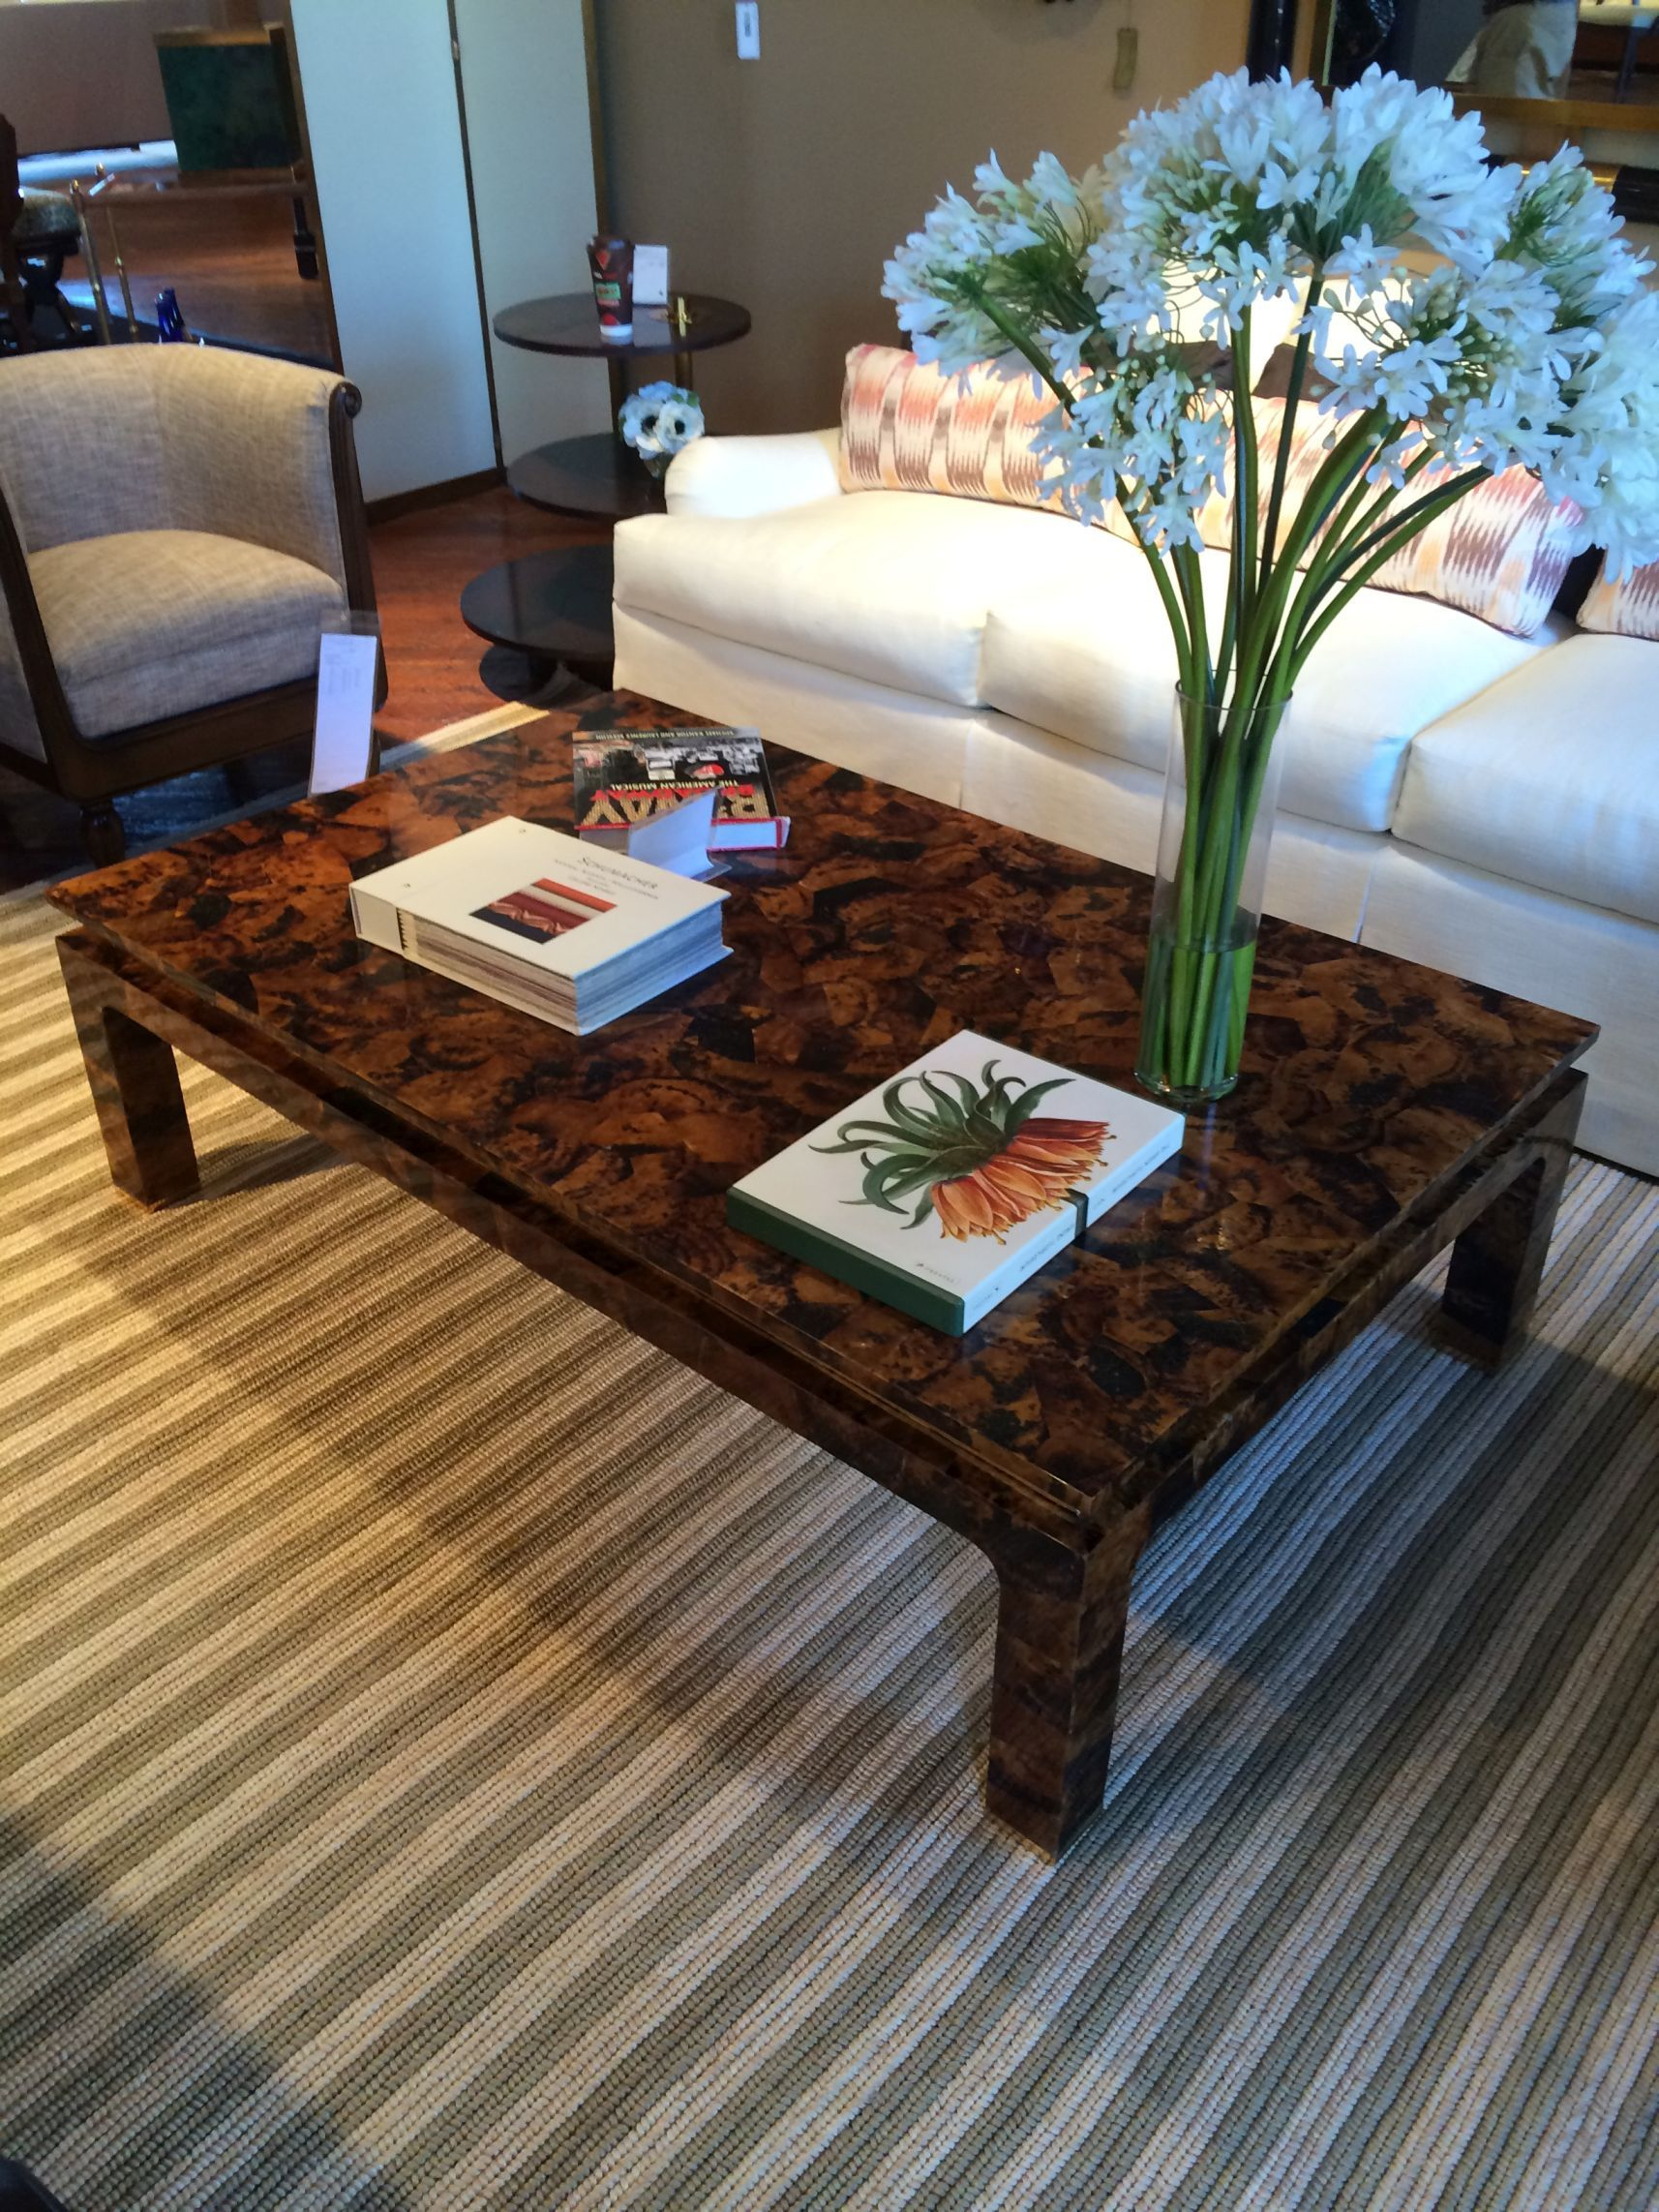 tiger penshell coffee table tortoise shell pen horn and miles redd kidney accent mecox gardens bedside tables inch round tablecloth replica furniture eames contemporary floor